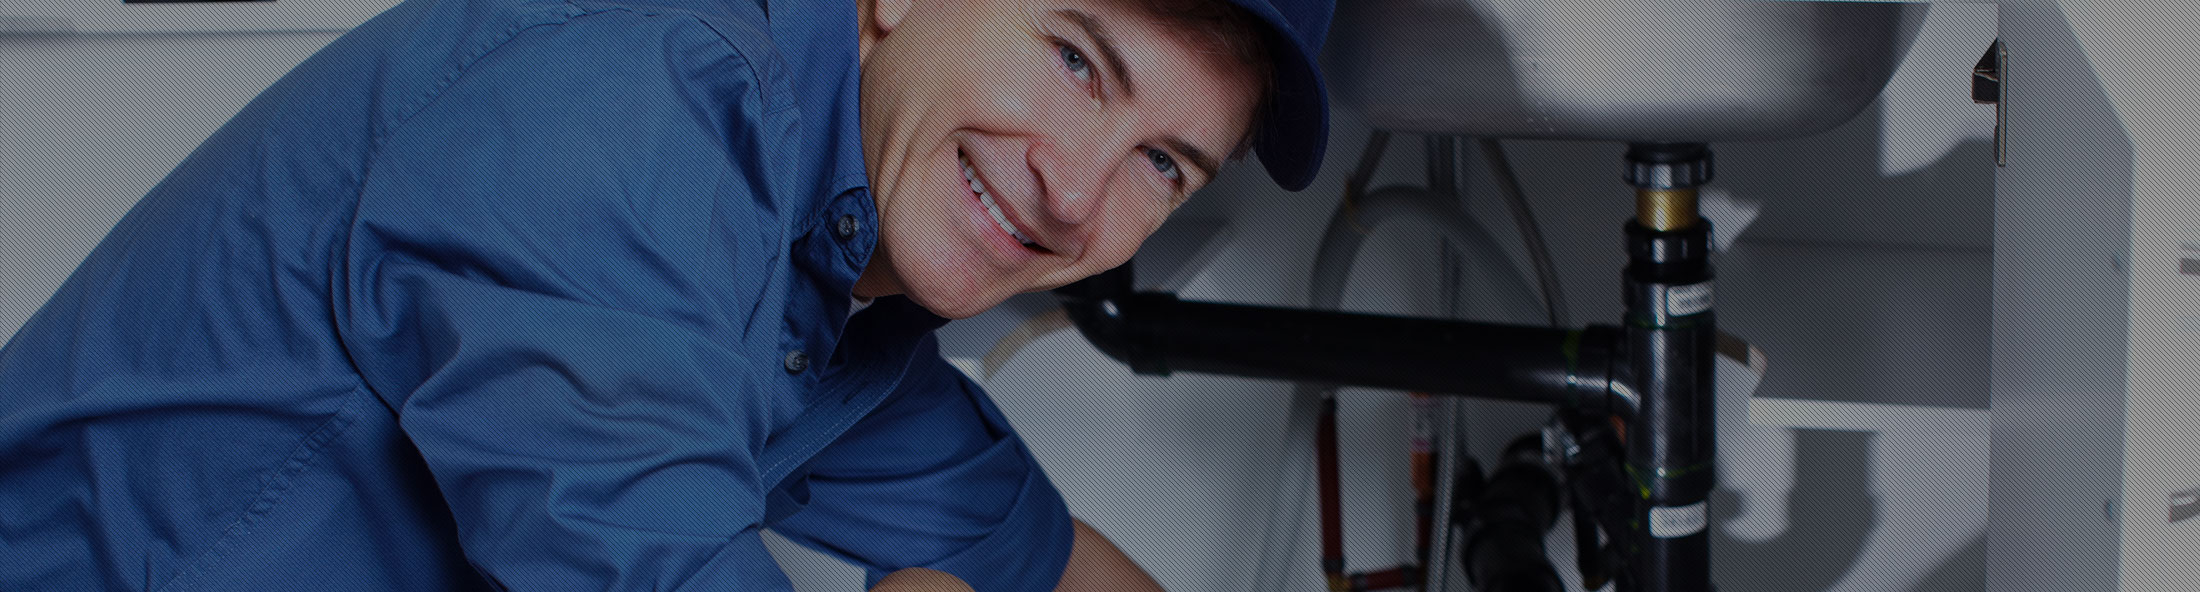 Plumbing Specialists in George, CA